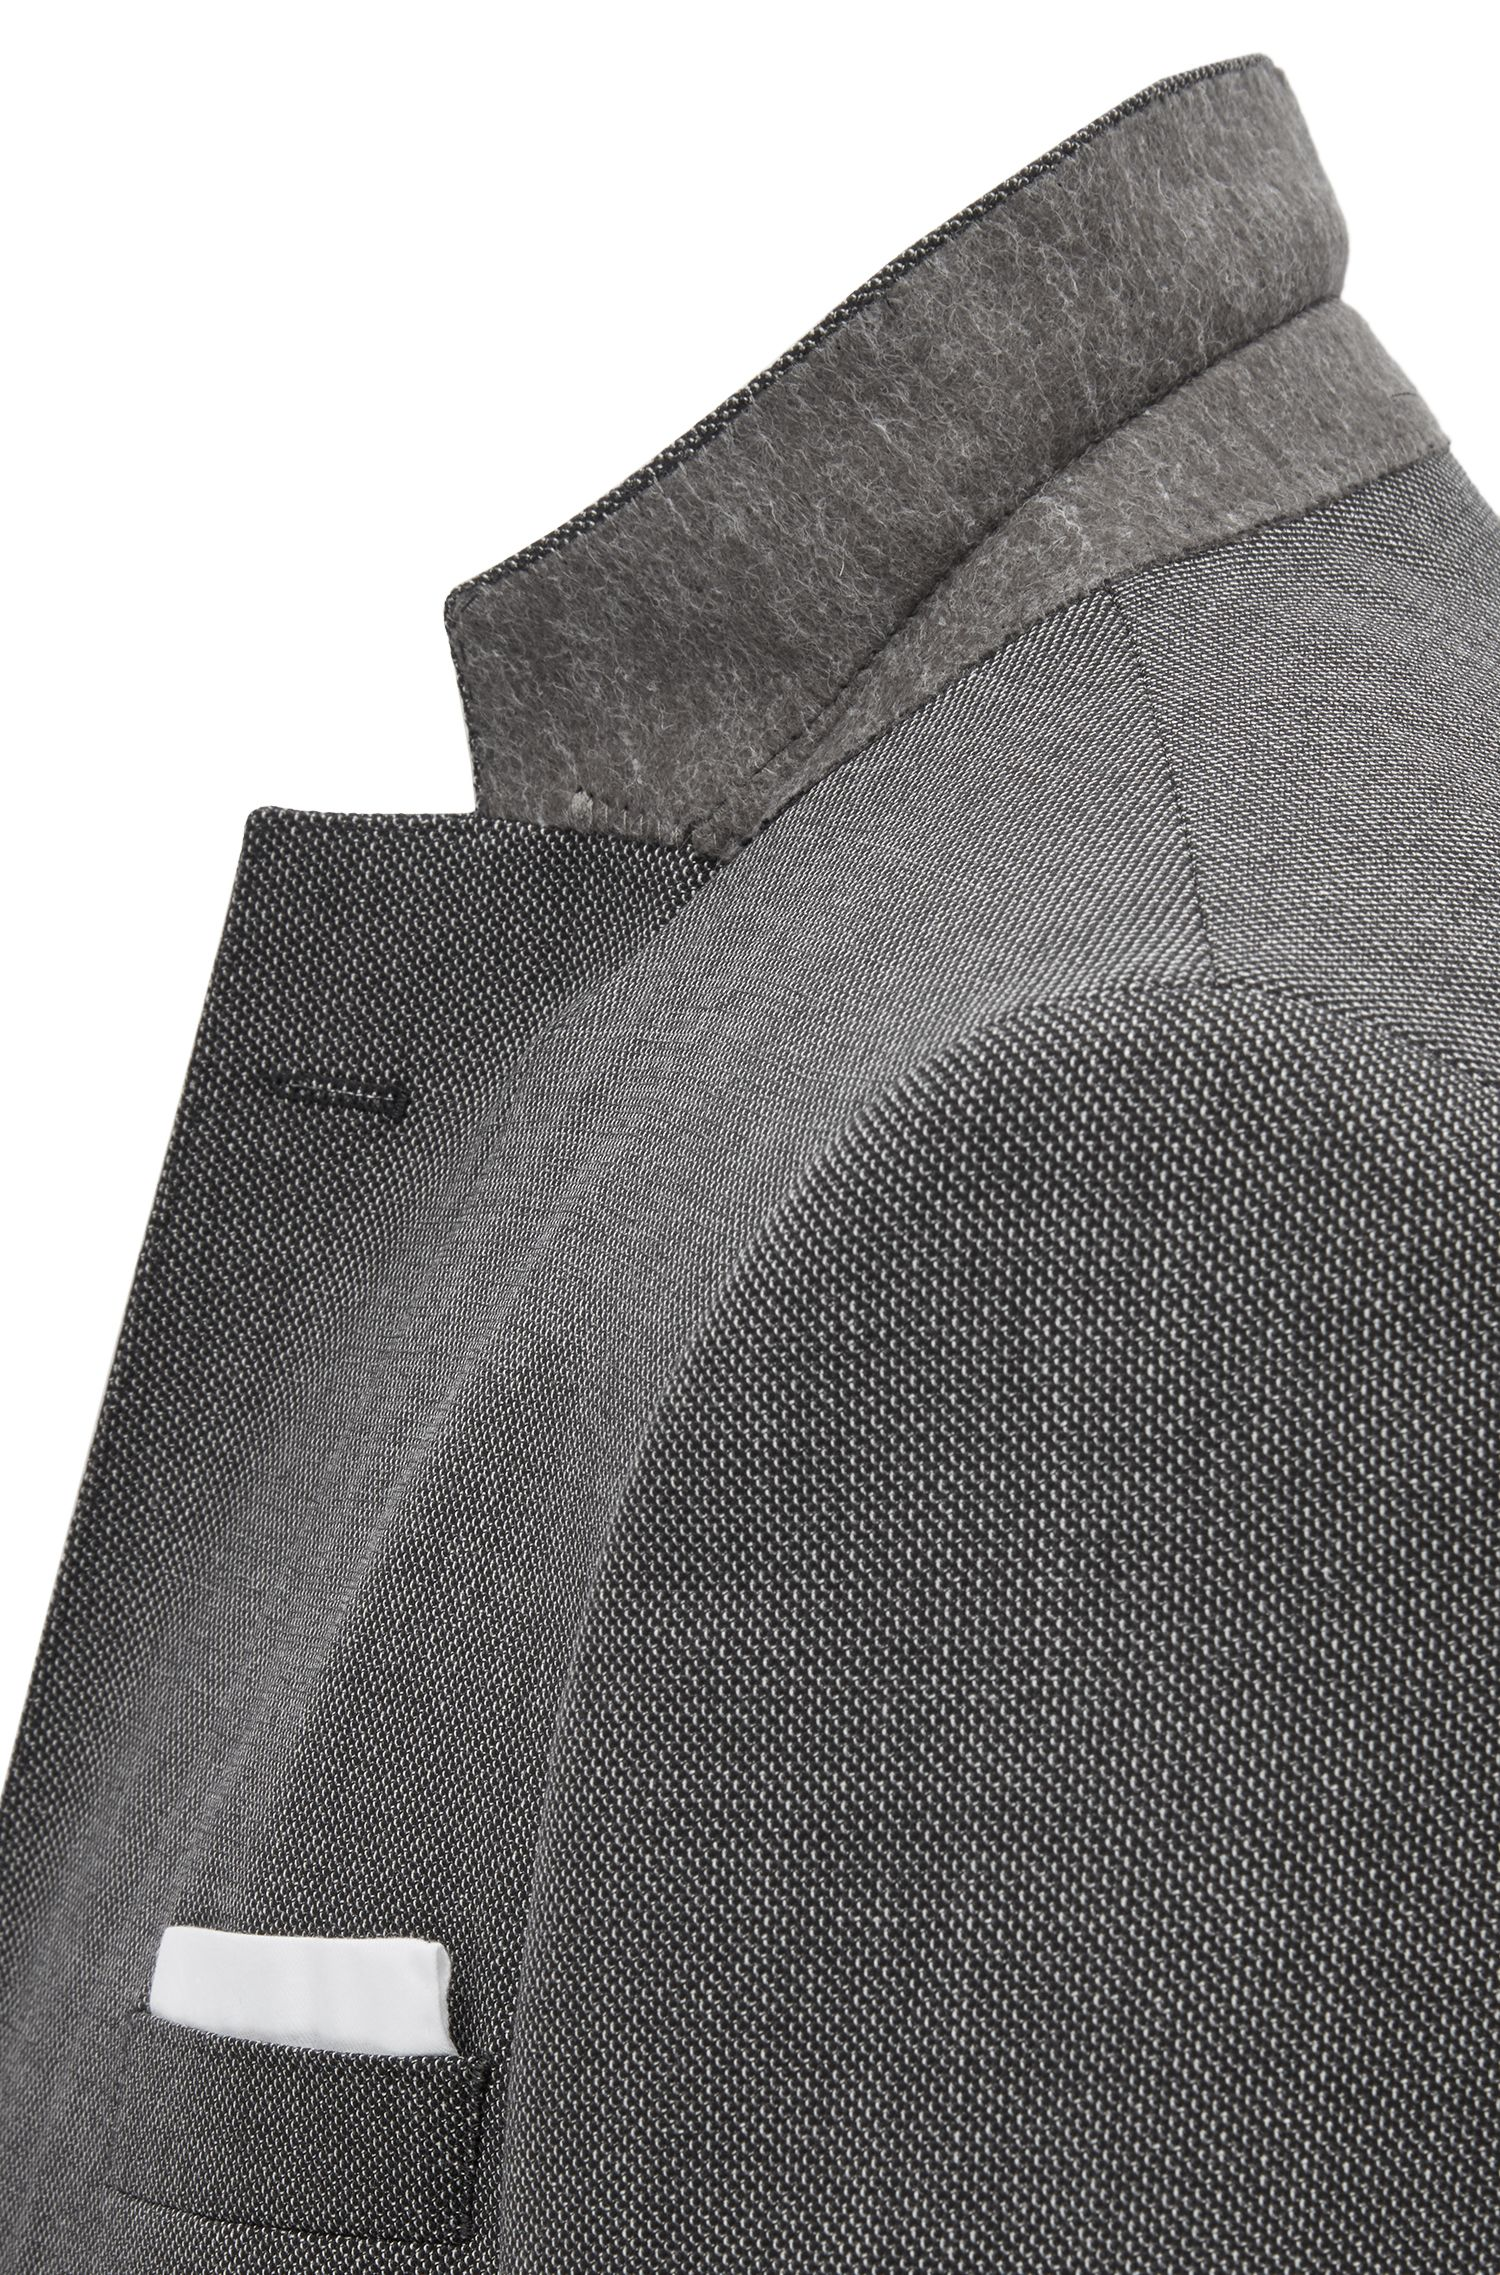 Slim-fit suit in patterned virgin wool, Black